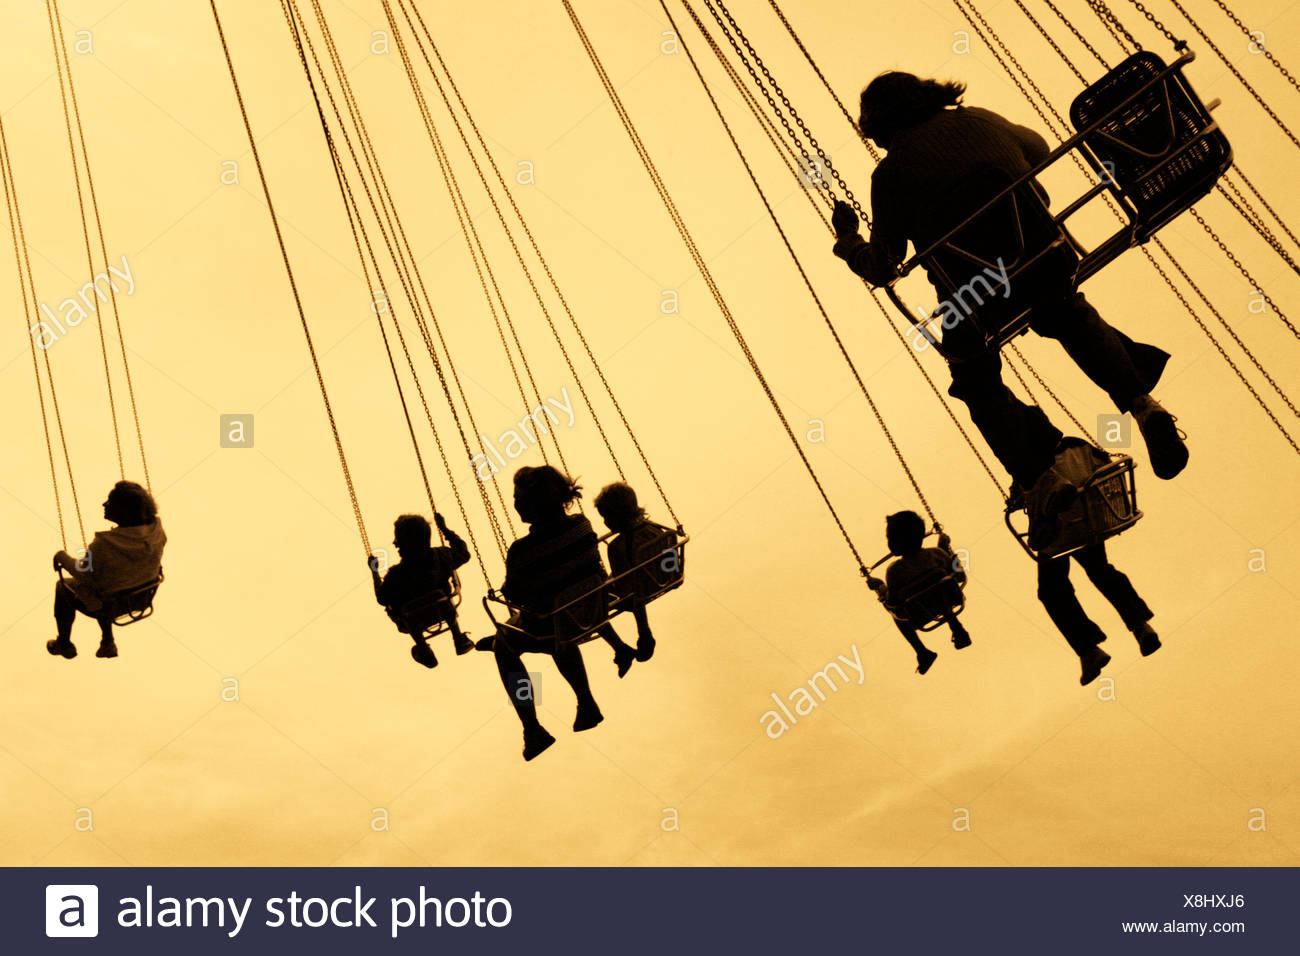 Sweden, Vastra Gotaland, Gothenburg, Silhouettes of people on carousel in Liseberg amusement park - Stock Image